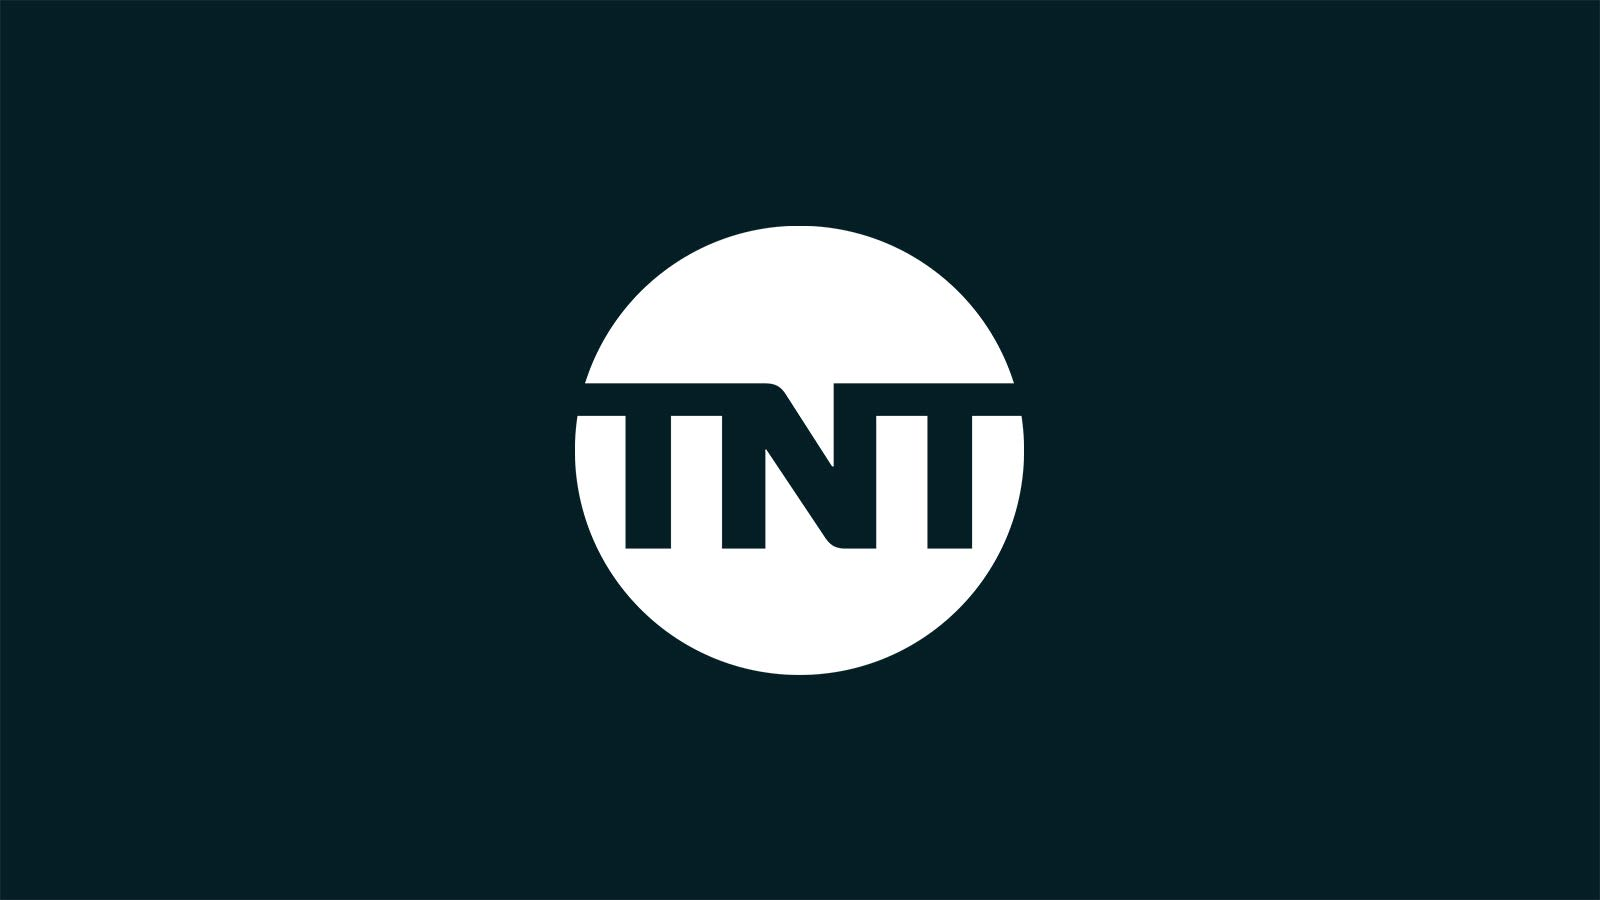 Bring Your Favorite Tnt Shows To Your Next Video Call Tntdrama Com